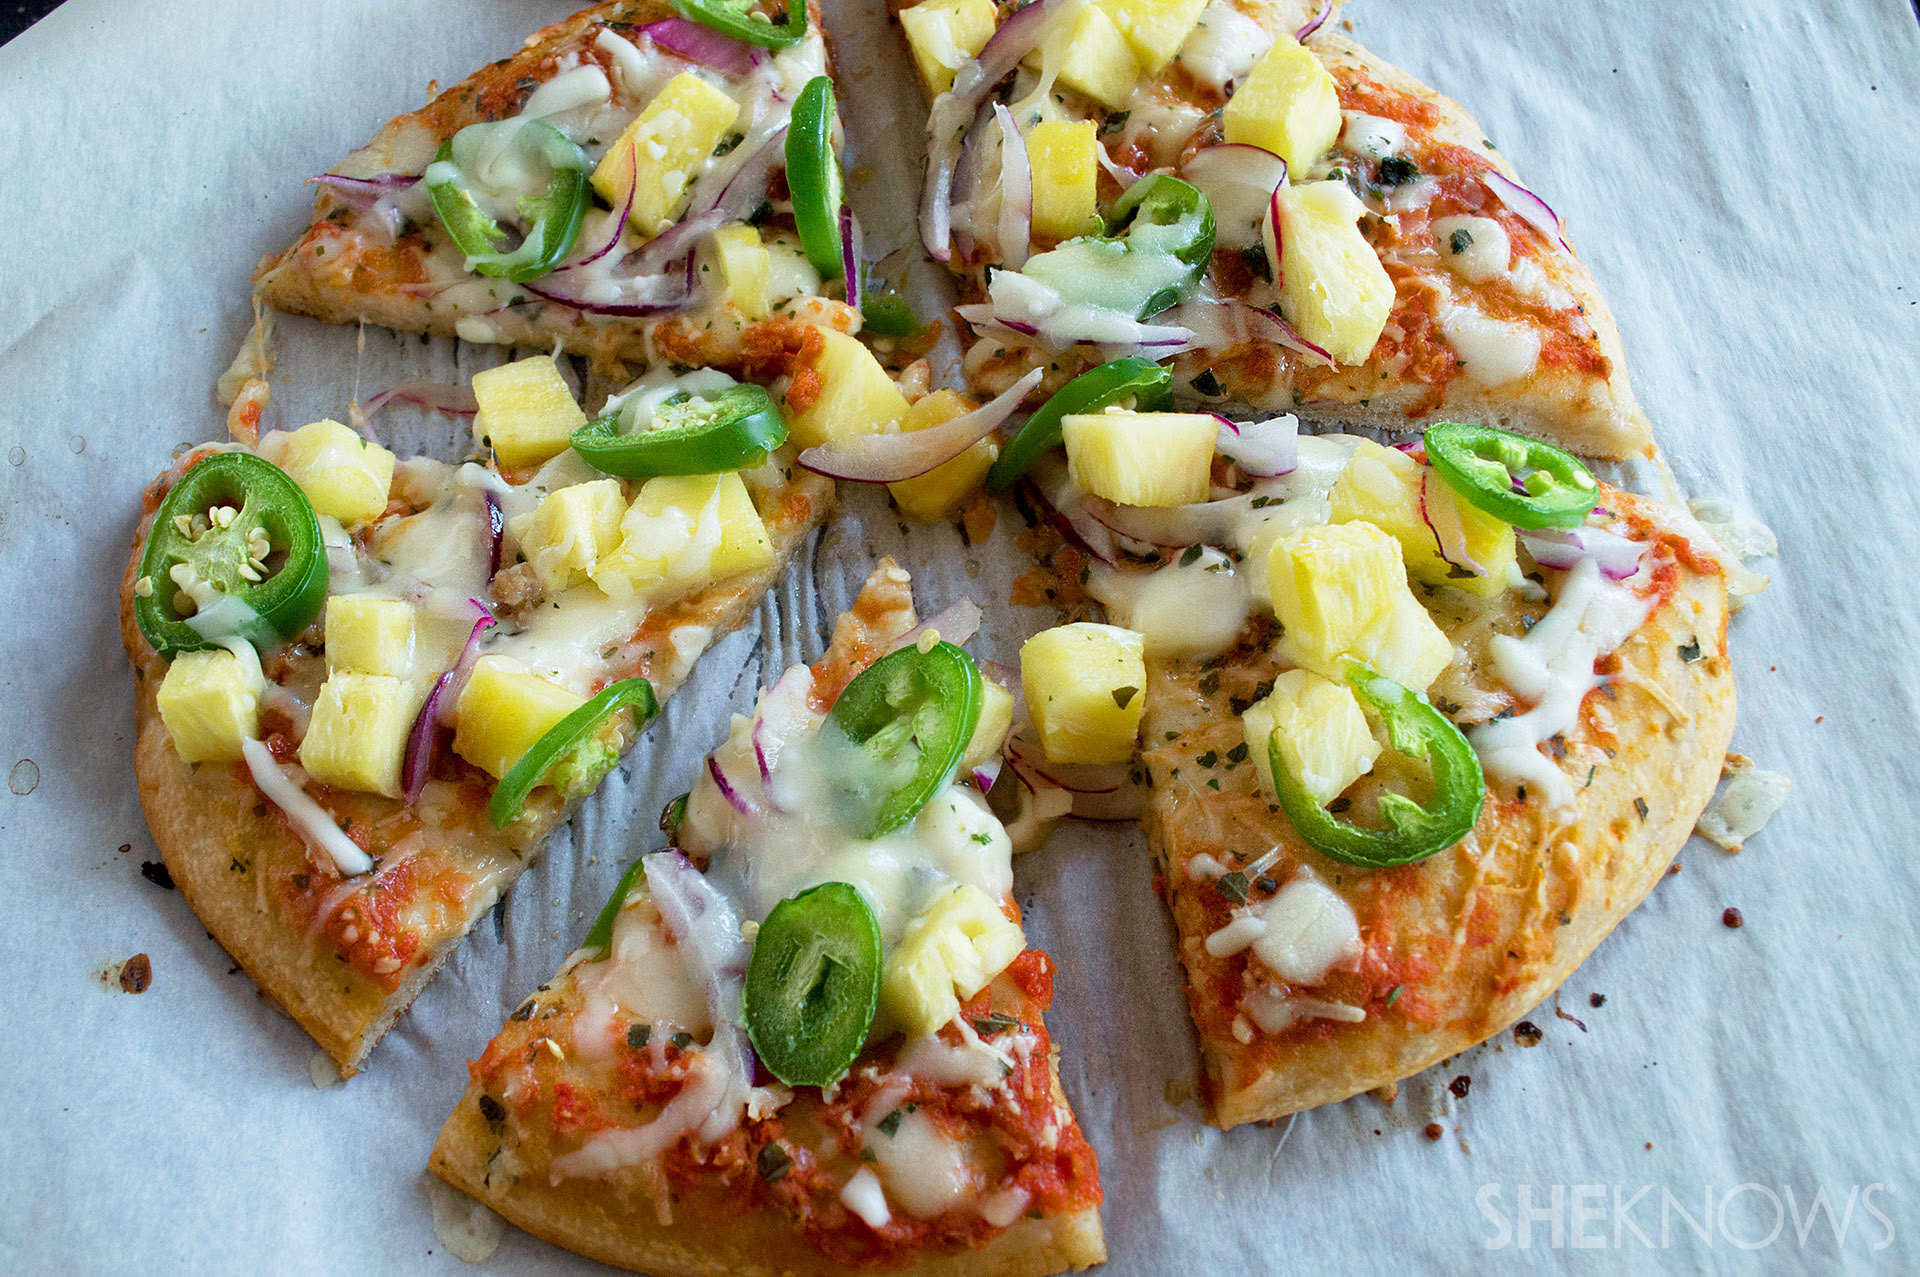 Spicy sweet pizza recipe